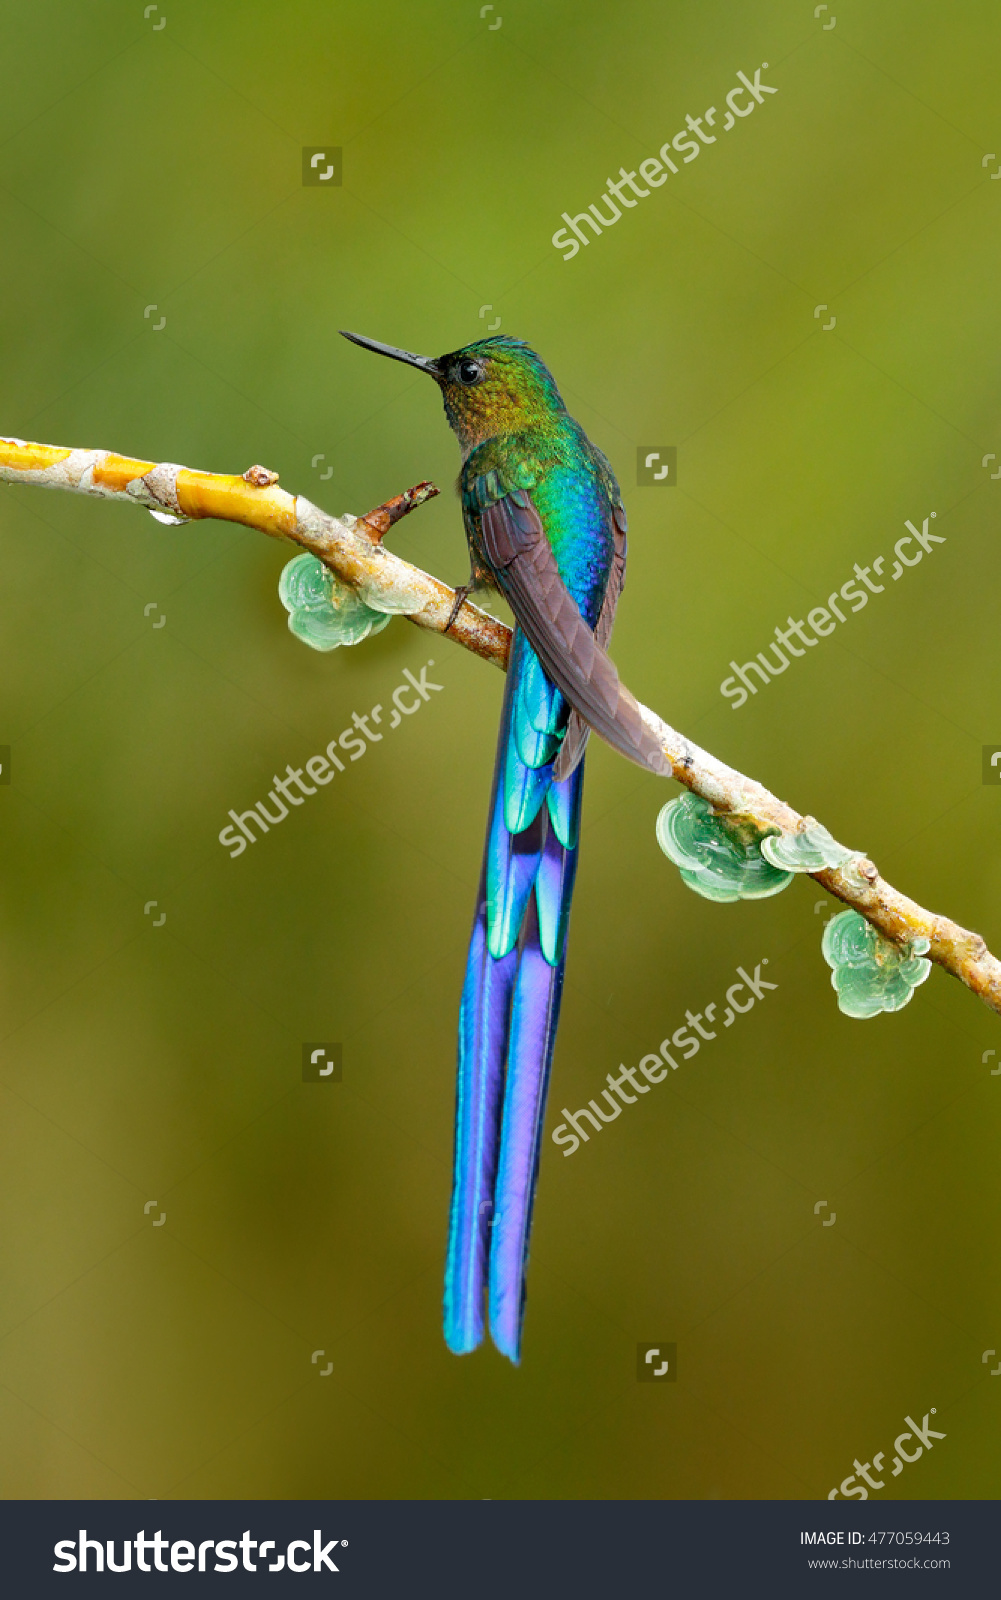 Long-tailed Sylph clipart #12, Download drawings